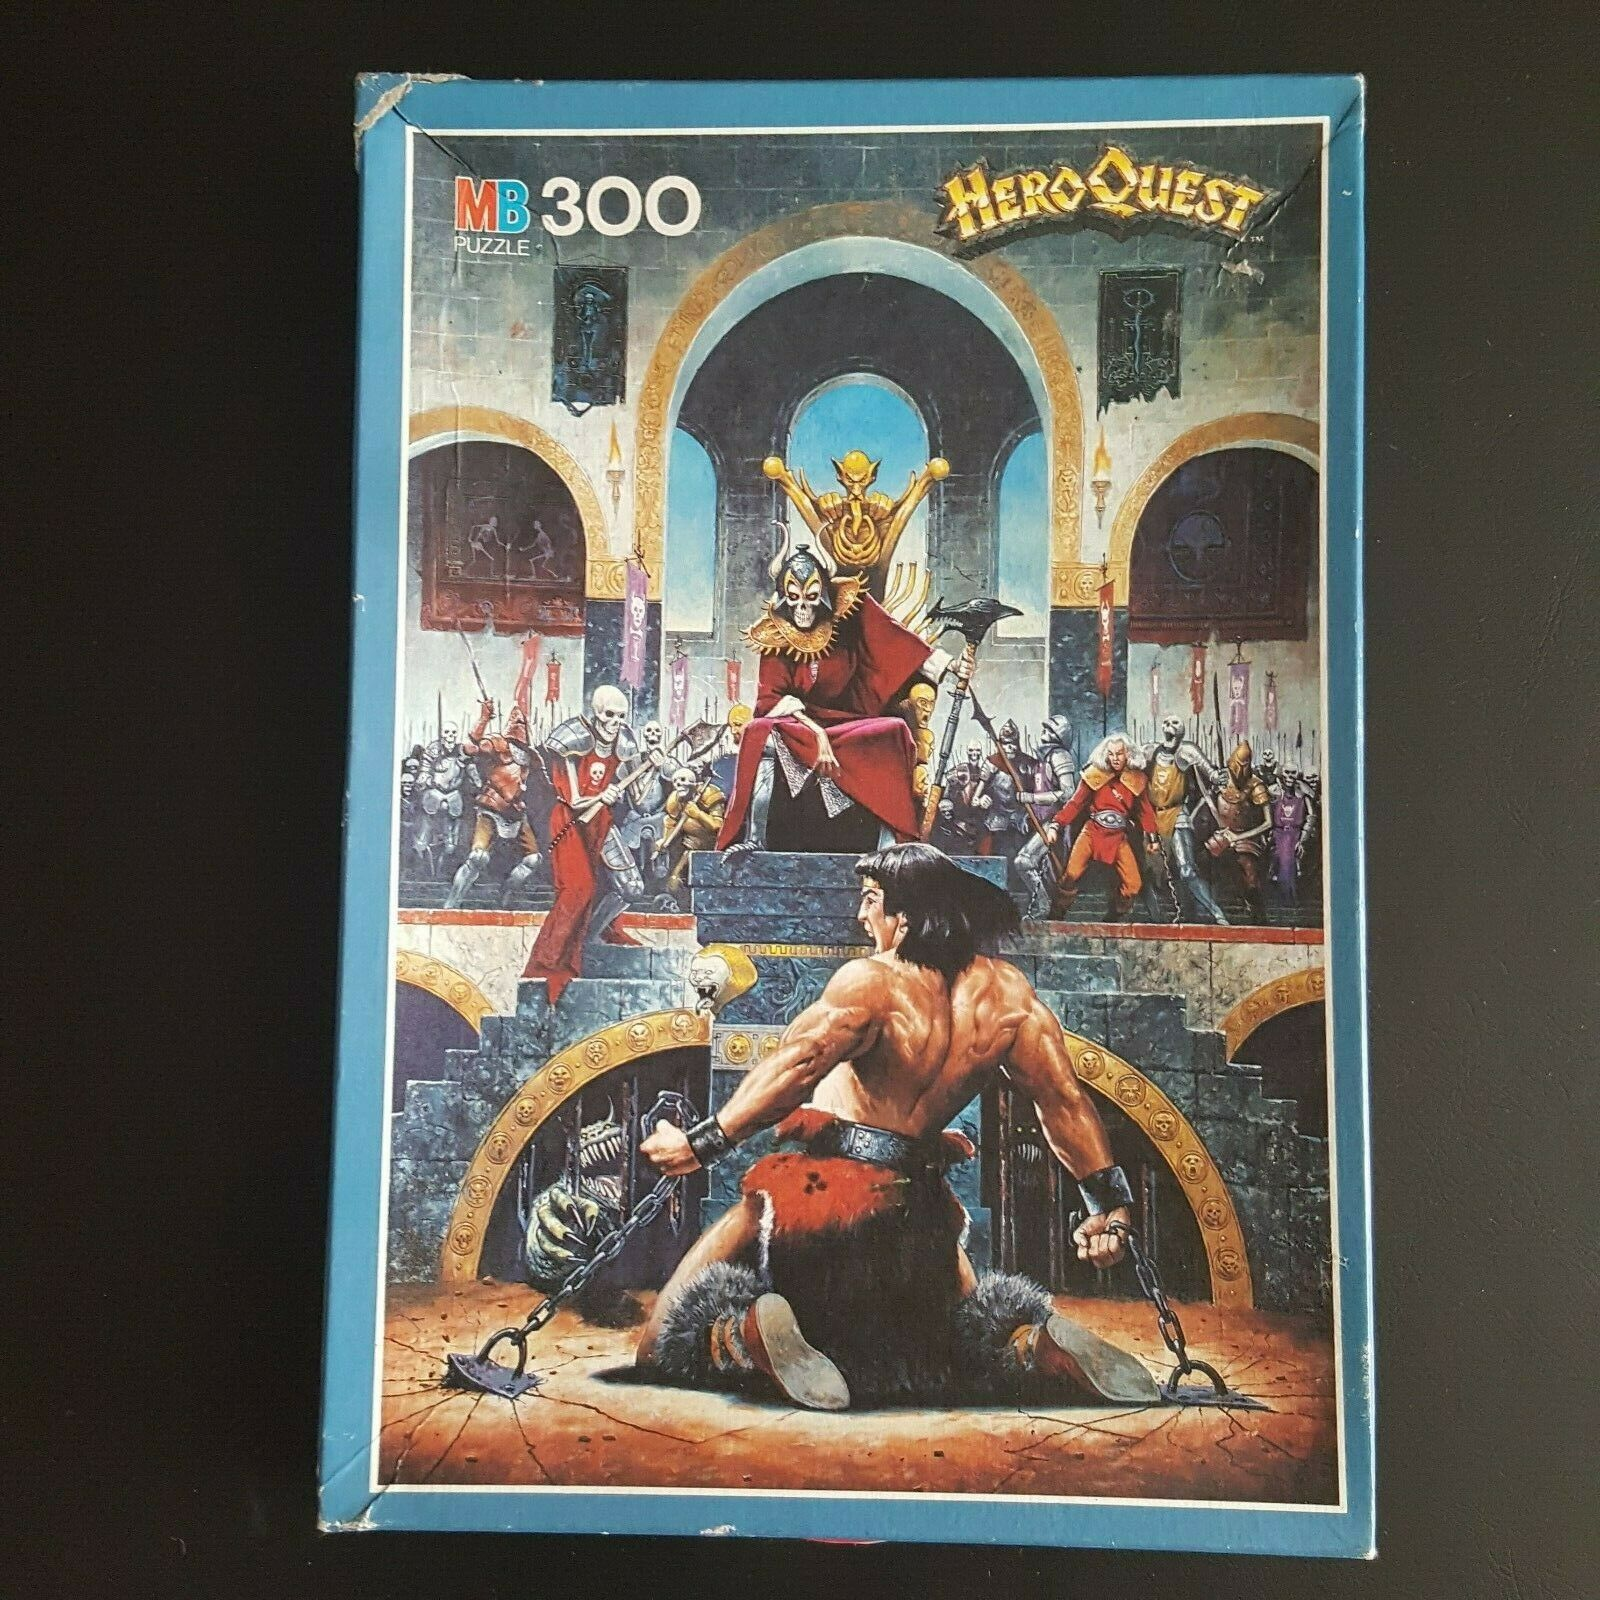 RARE Hero Quest  The Witch Lord  MB Jigsaw Puzzle 300pcs COMPLETE VGC